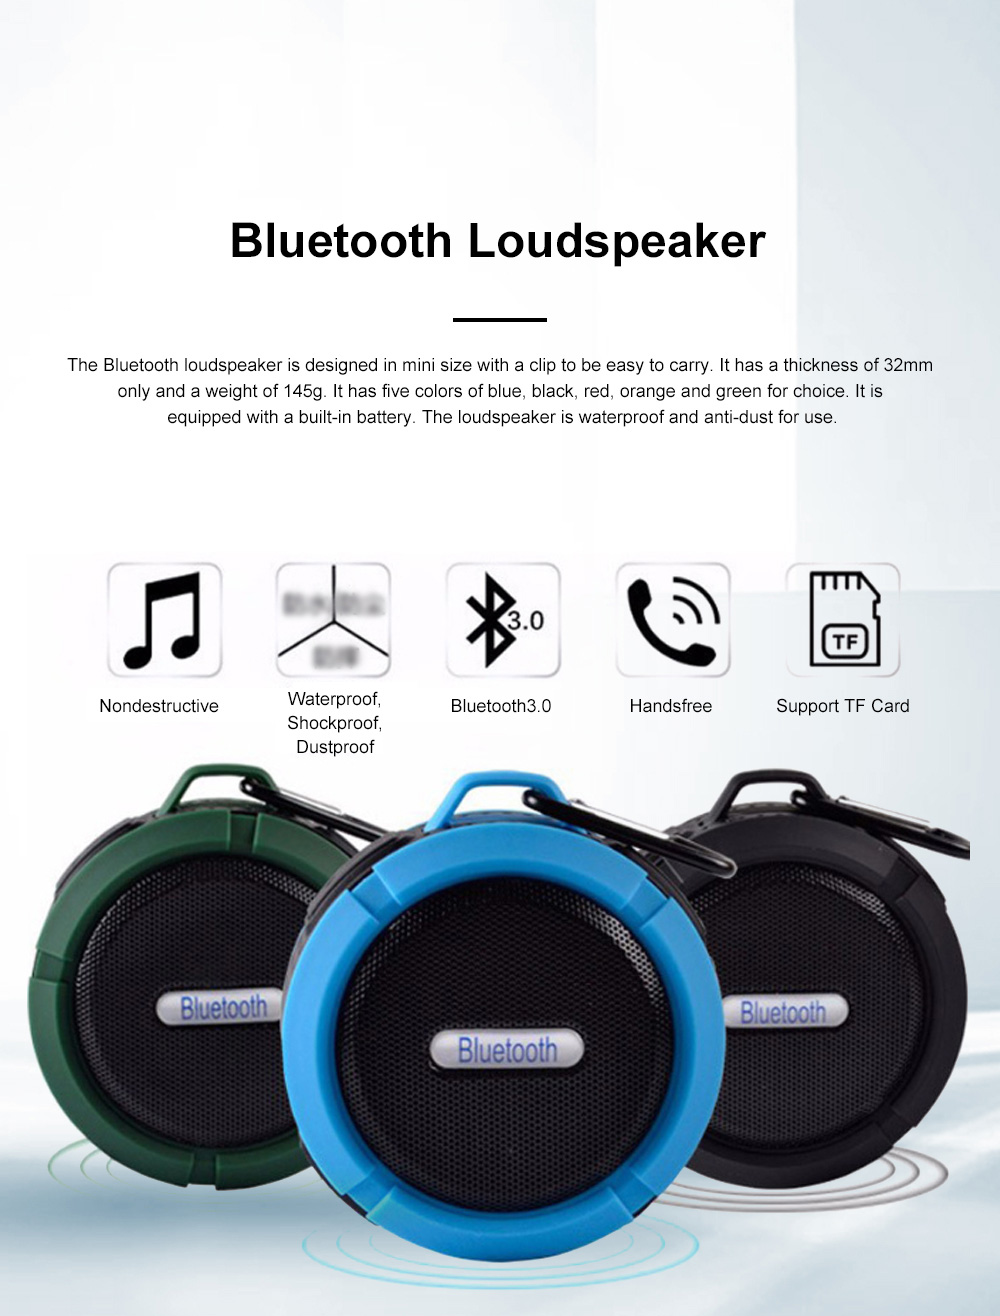 Waterproof Bluetooth Loudspeaker for Outdoors Travelling Hiking Portable Outdoor Mini Speaker Box Anti-dust Baffle Box With Suction Cup & Hook 0